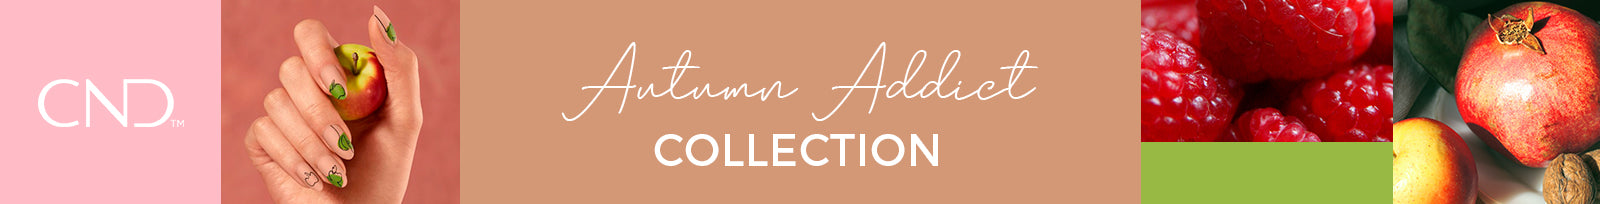 CND Autumn Addict Collection Fall 2020